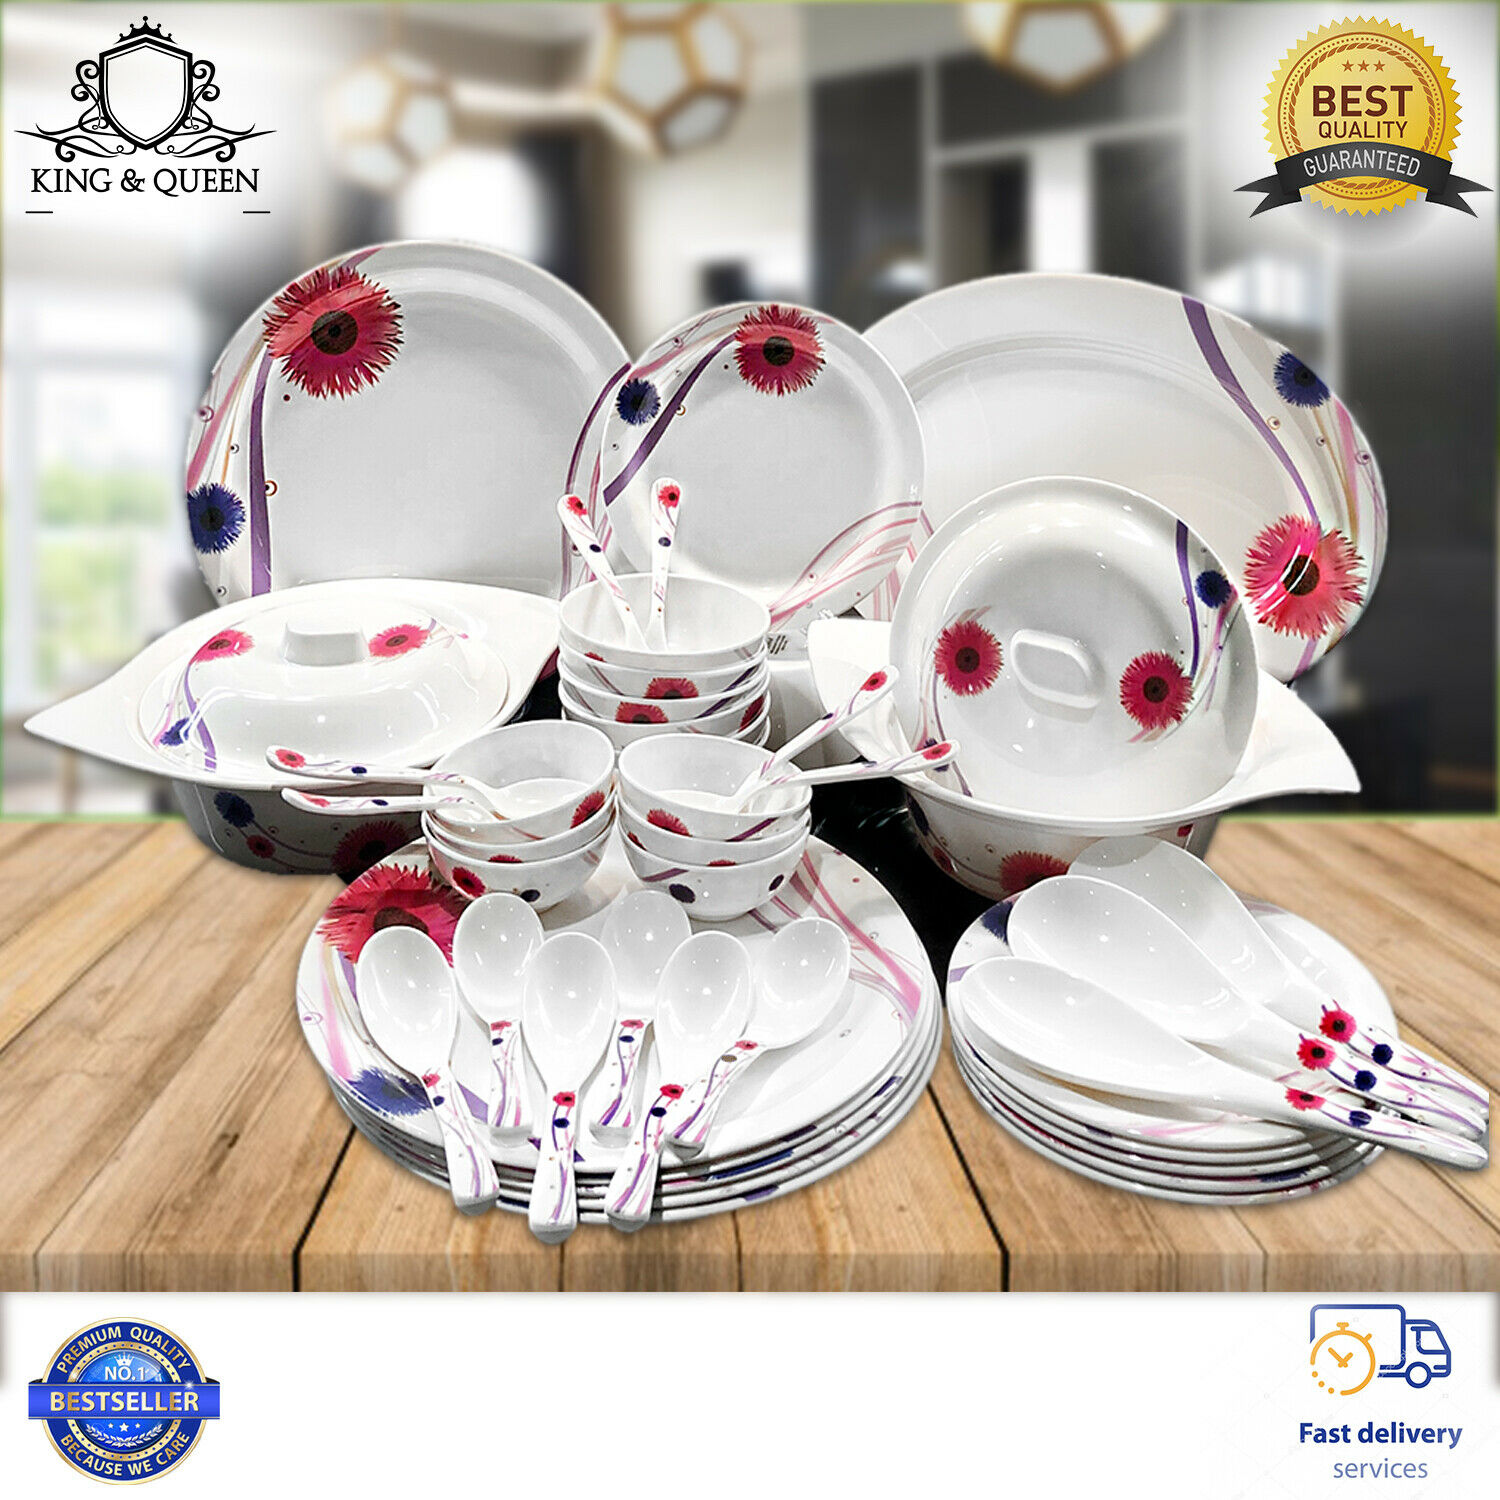 44 piece Melamine Dinner Set Tableware Rice Rice Rice Dish Soup Bowl With Lid Home Outdoor e234db